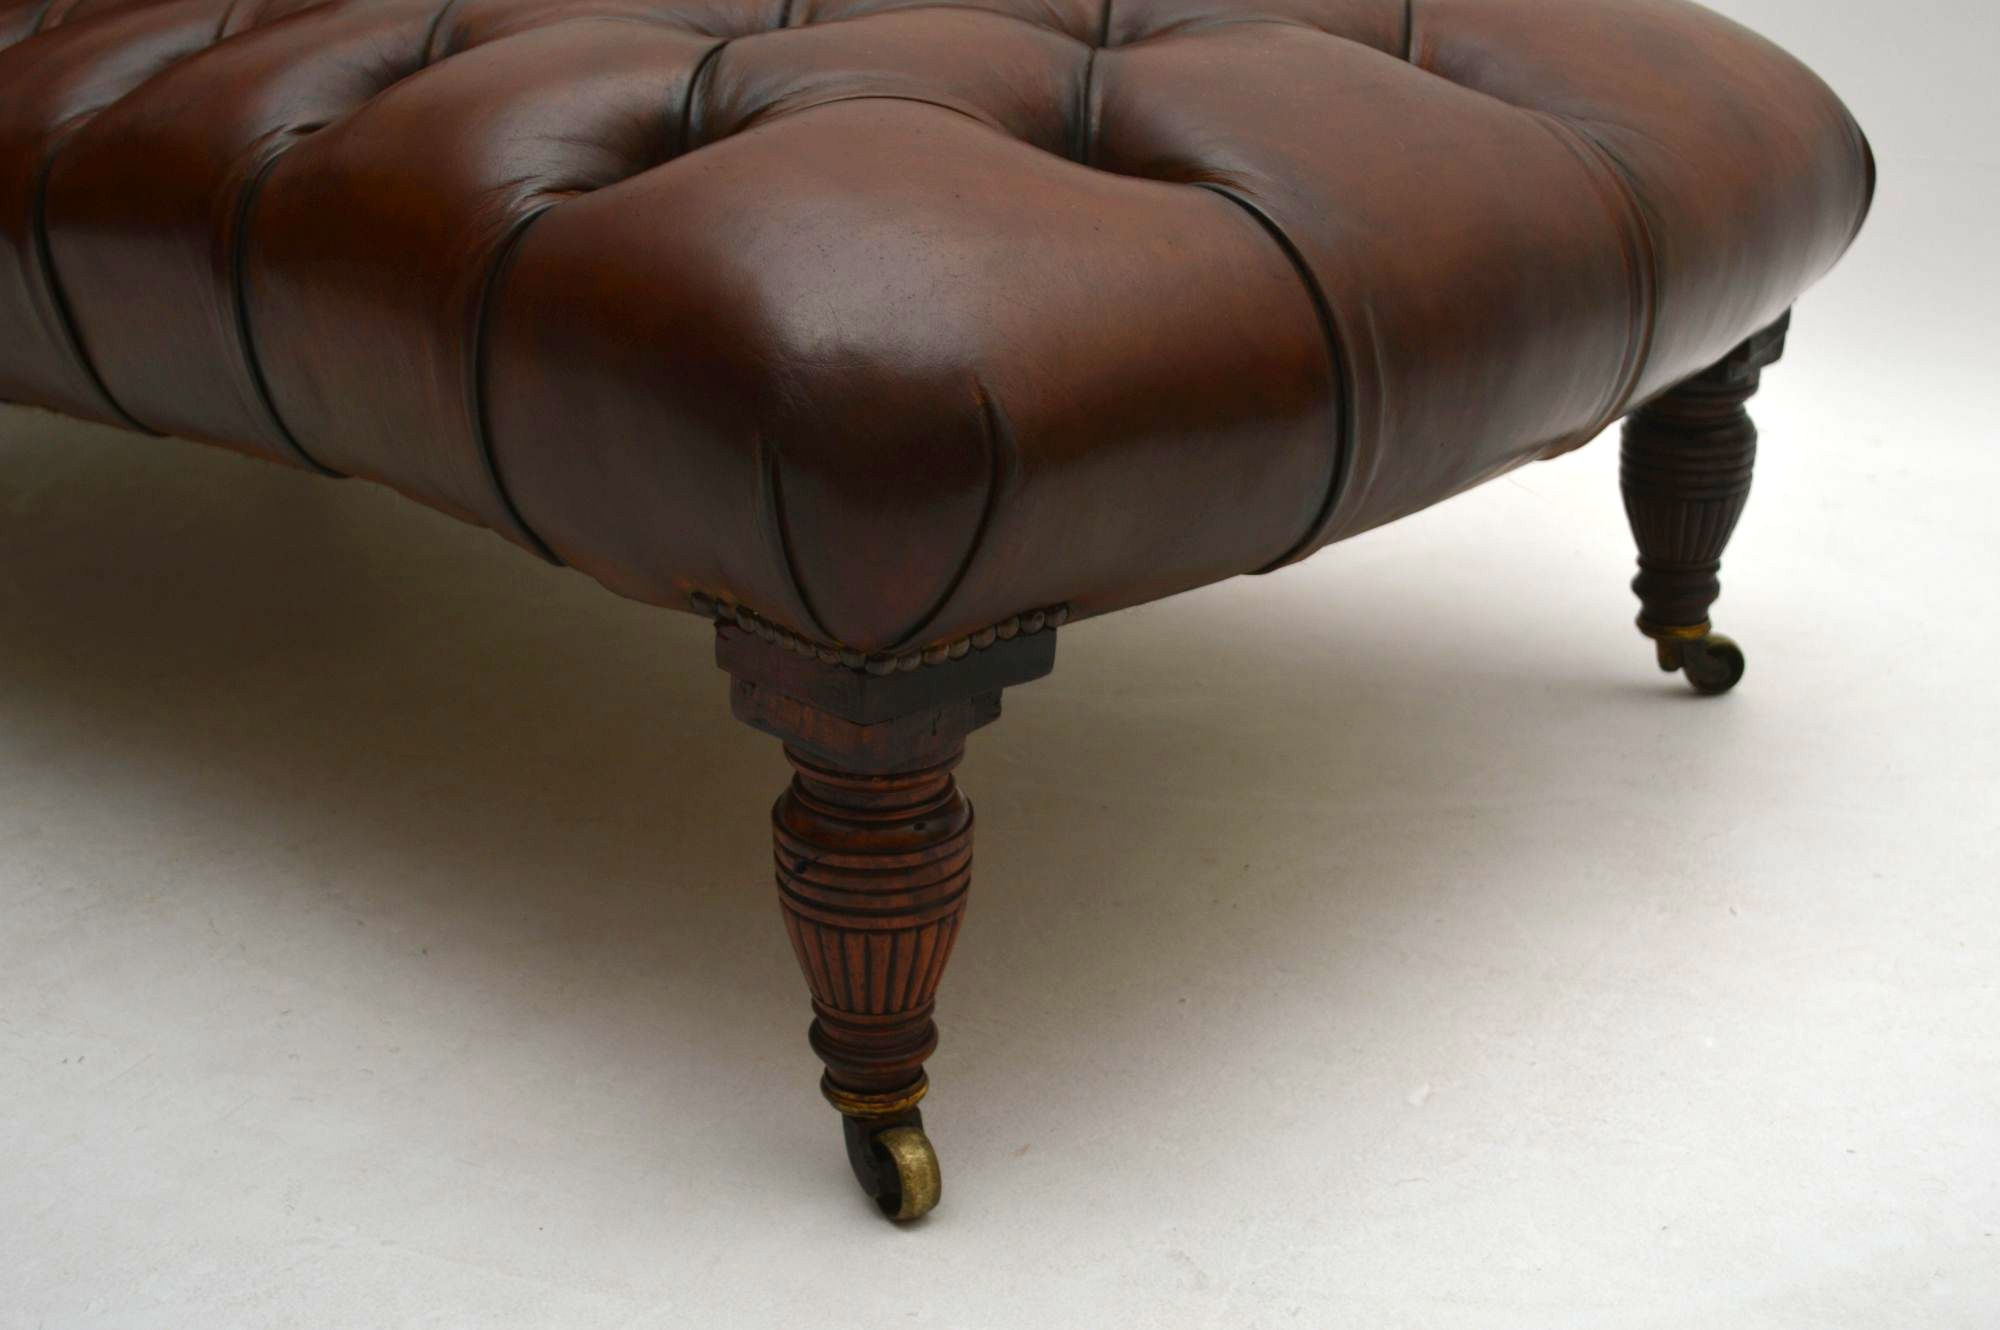 Antique victorian deep buttoned leather chaise lounge for Antique chaise lounges for sale